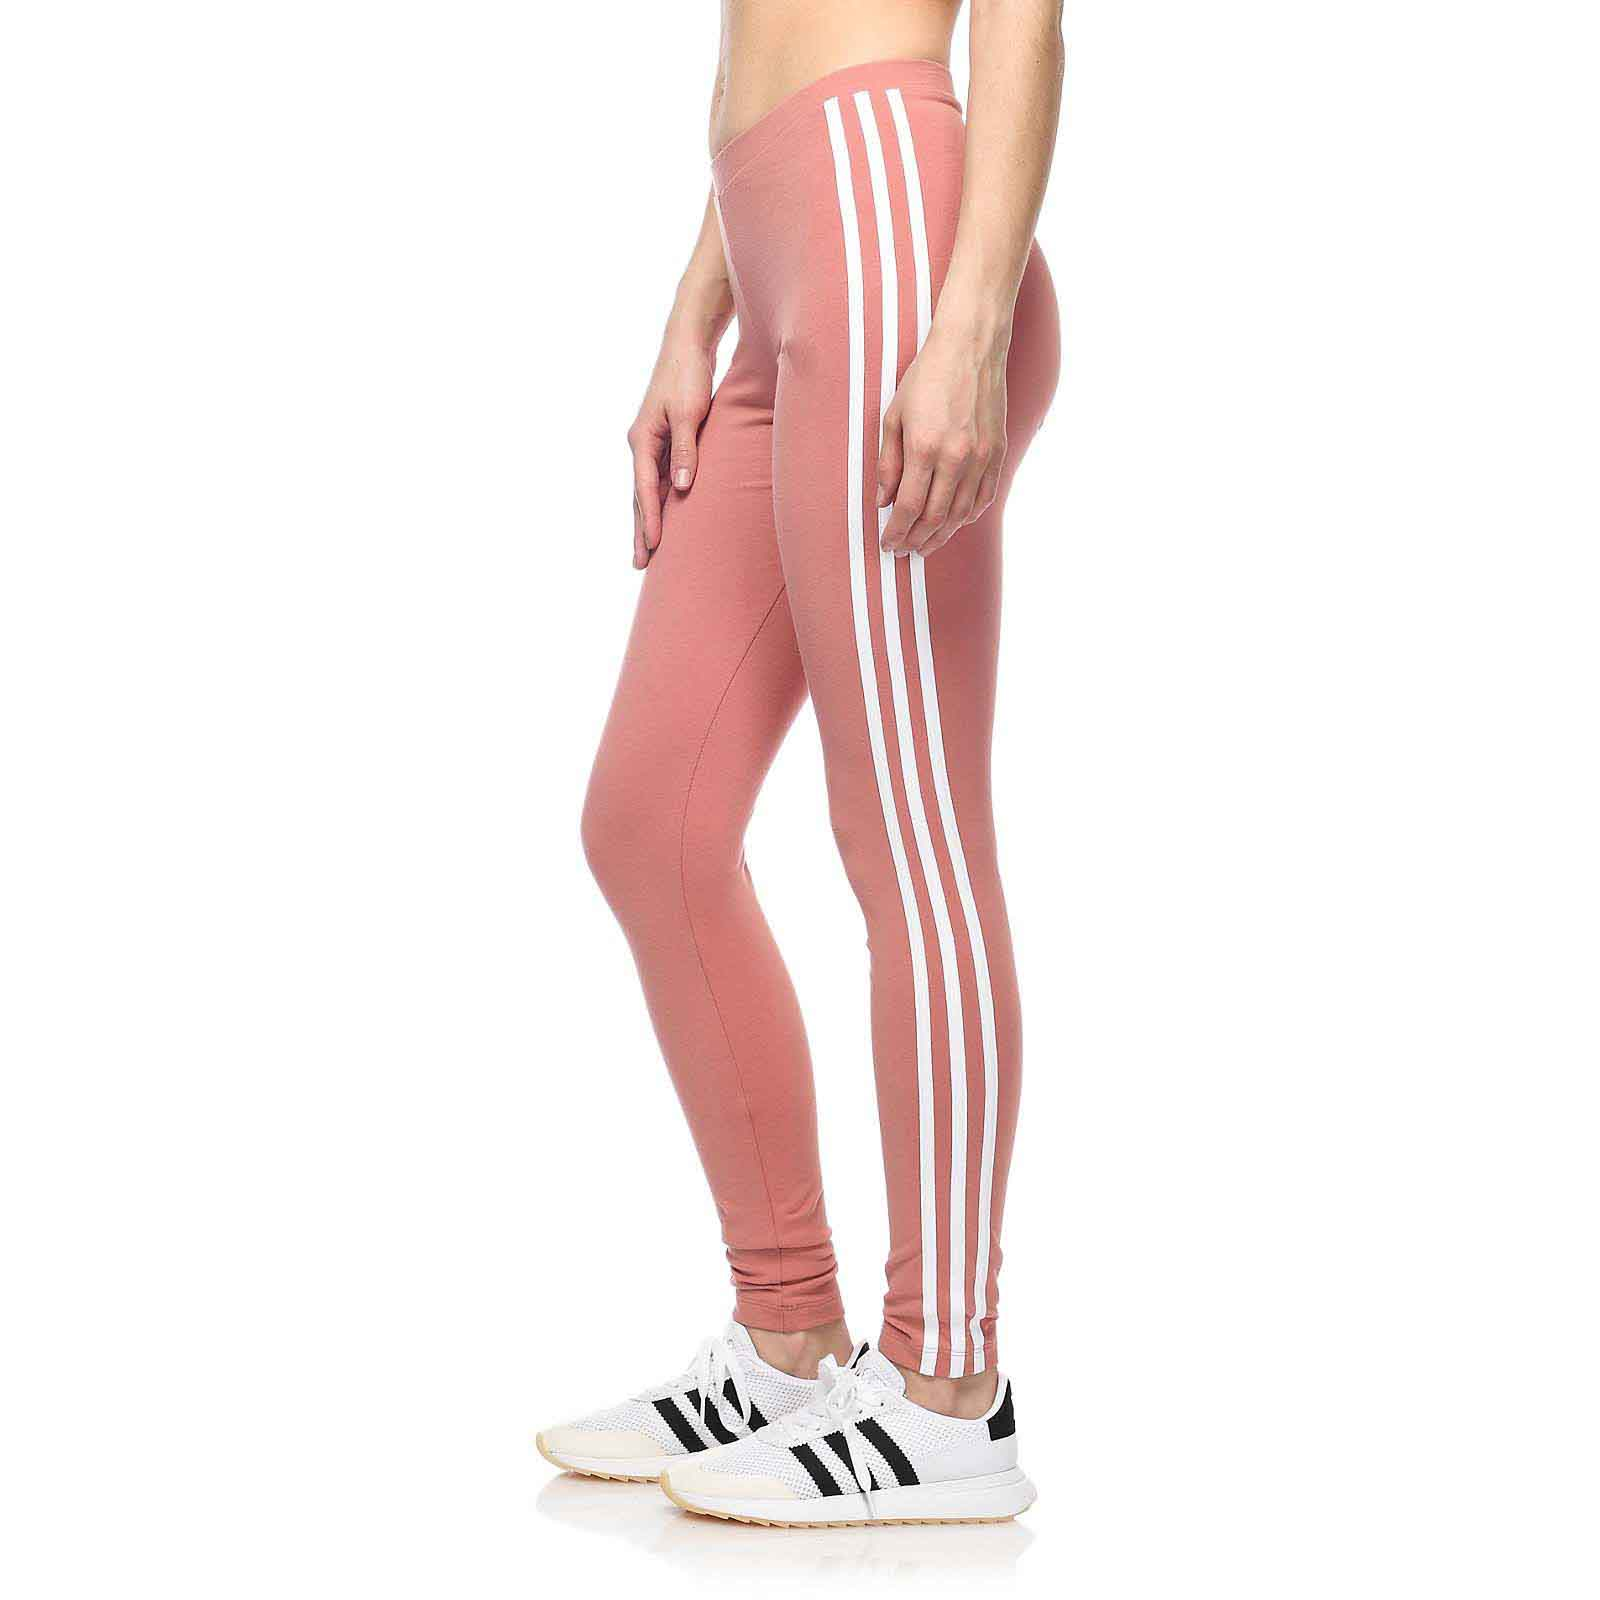 Custom Cut and Sew Leggings Manufacturers and Contractors